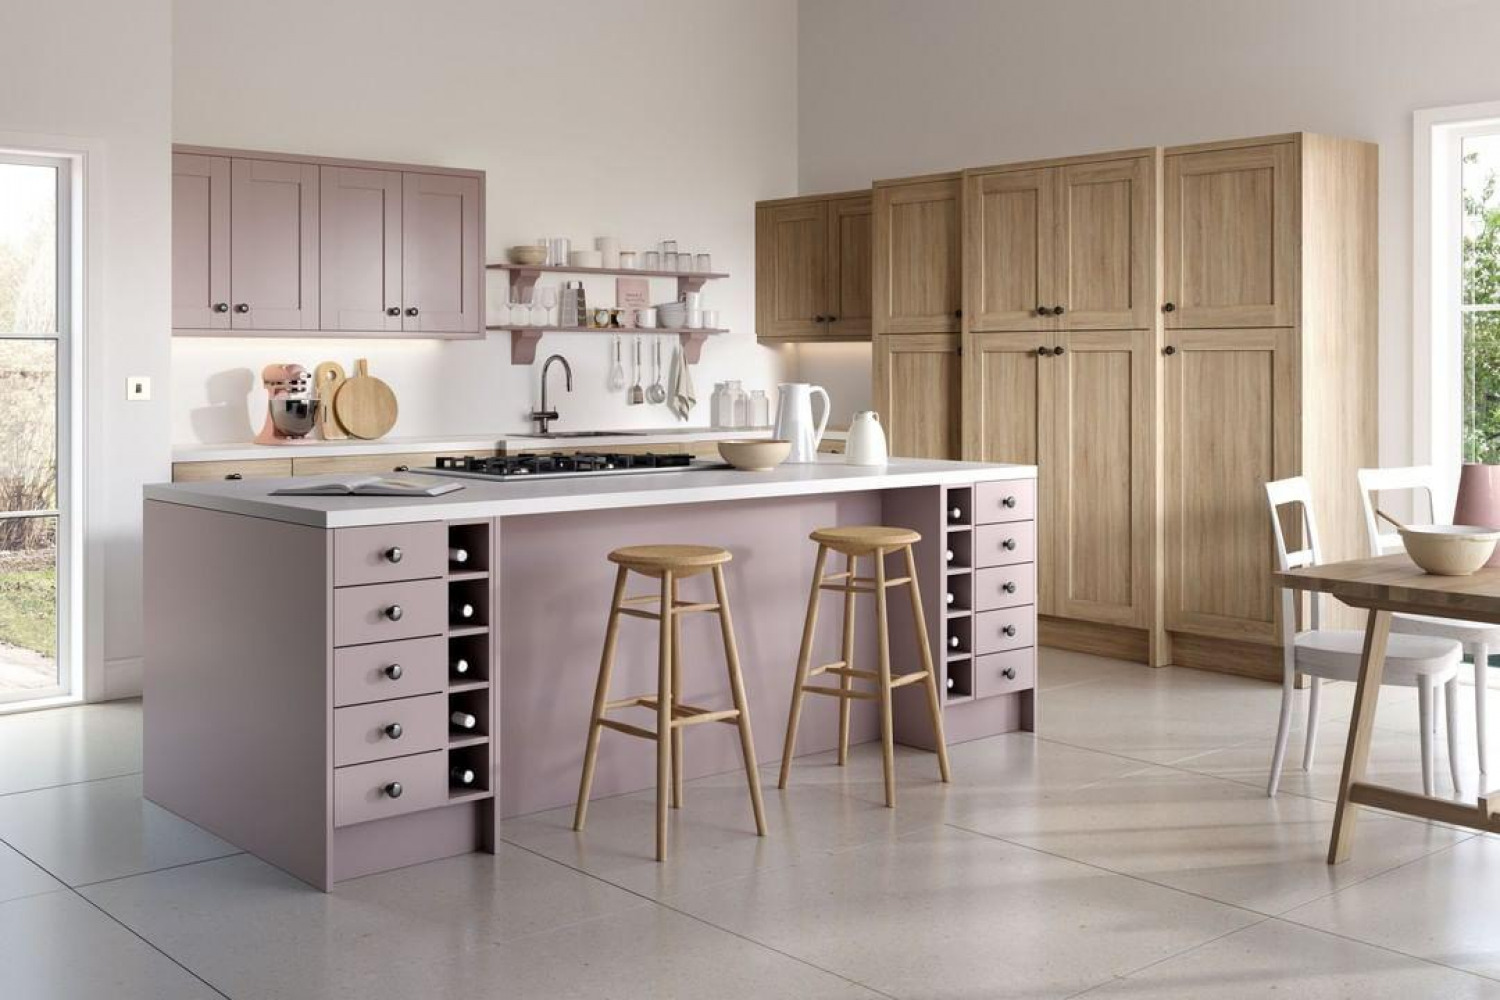 Kitchen Colour Ideas Pastel